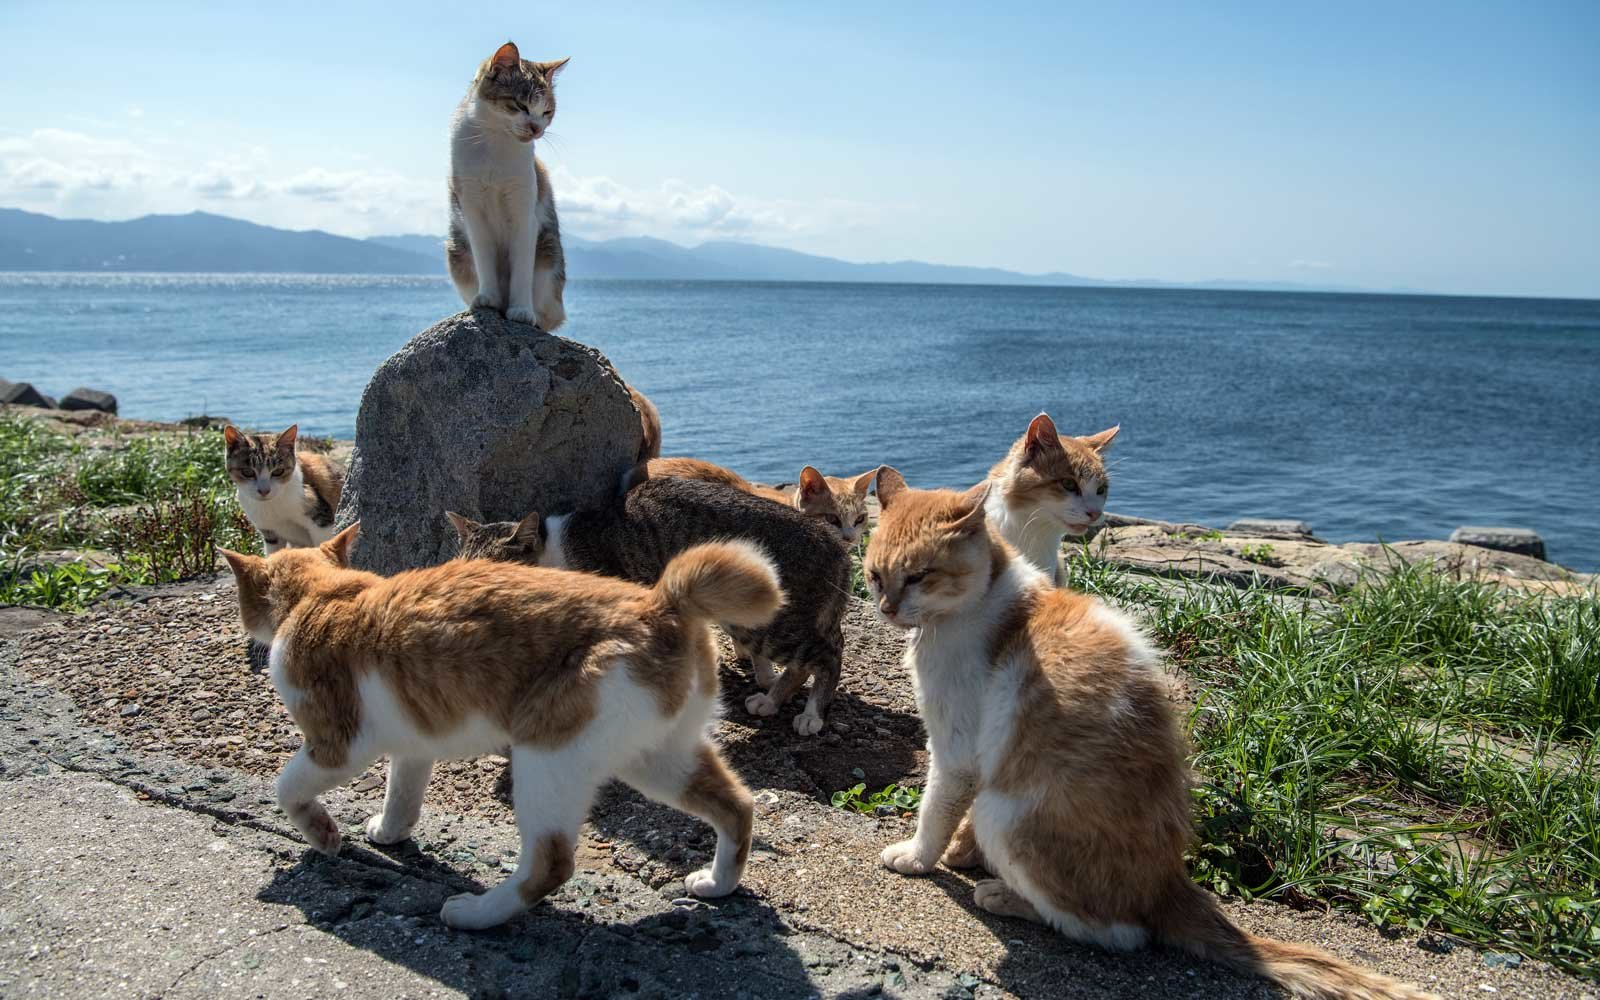 Cats relax in the sun in Aoshima, Japan.